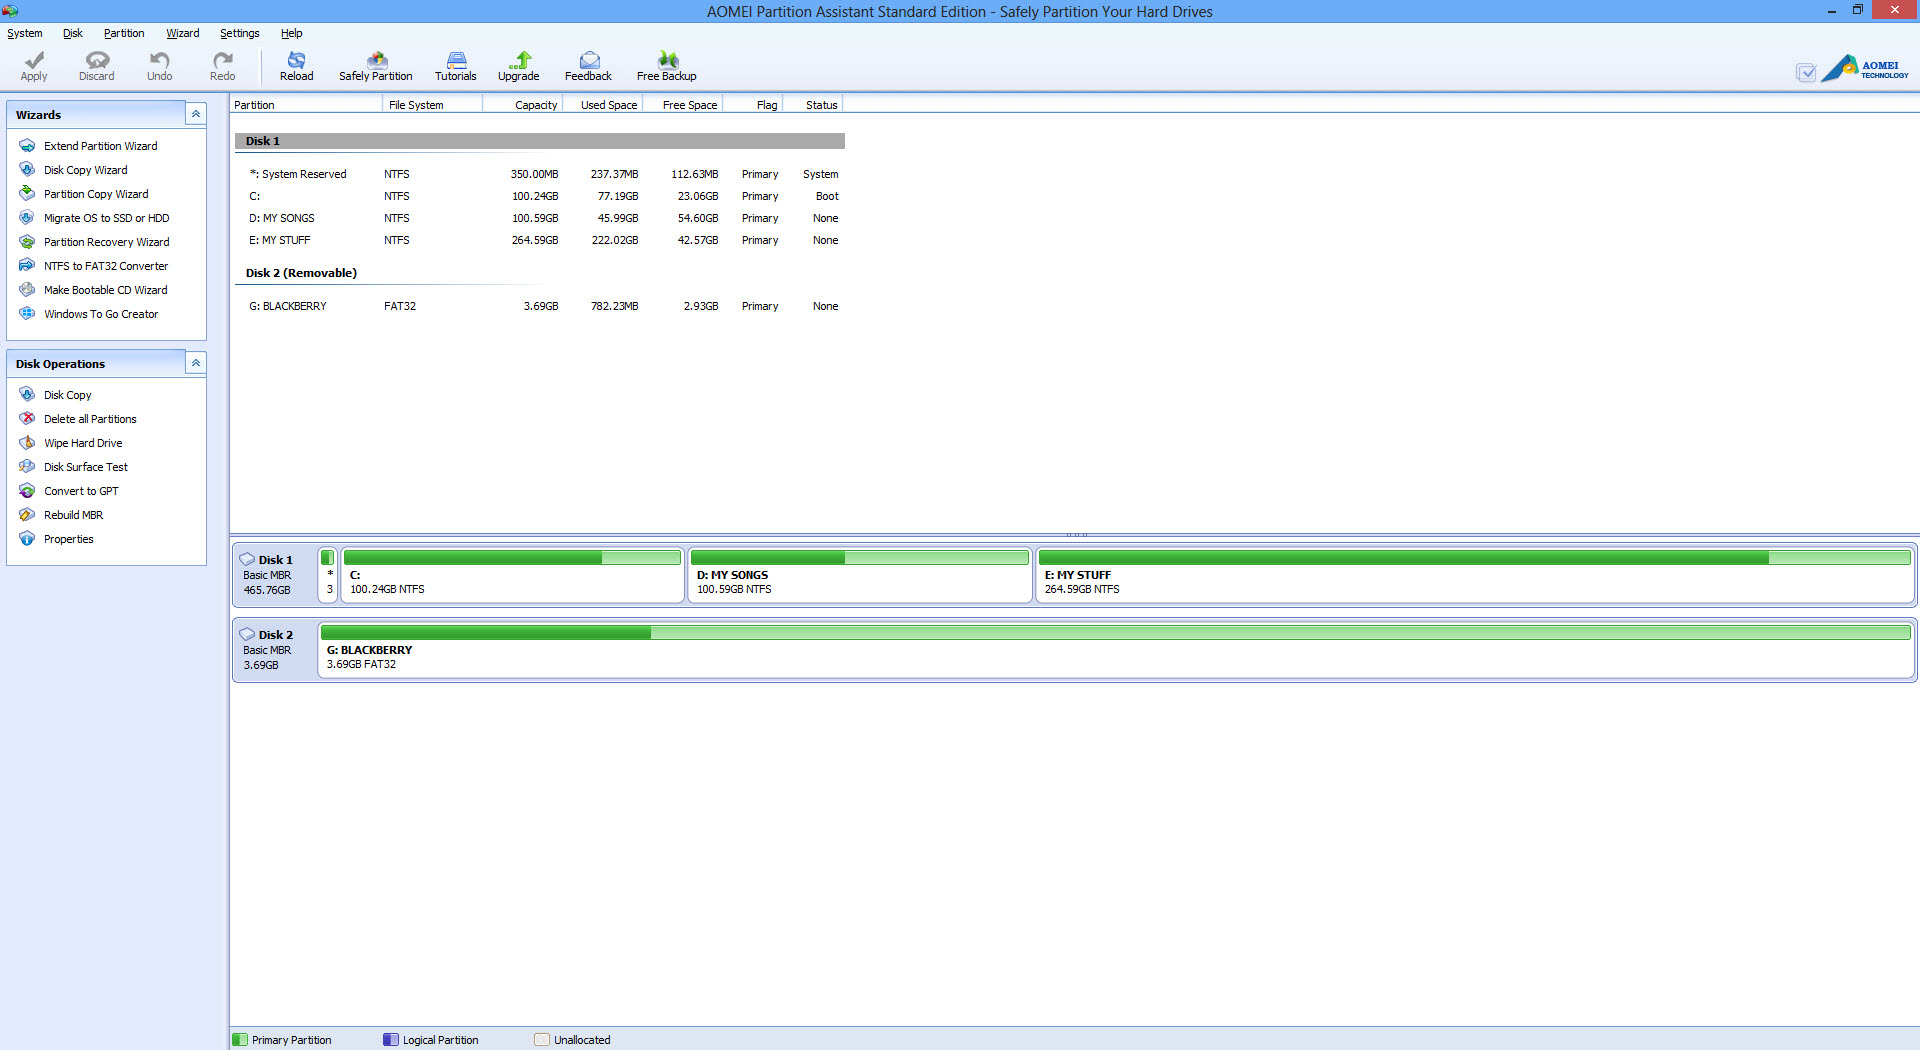 AOMEI Partition Assistant User Interface